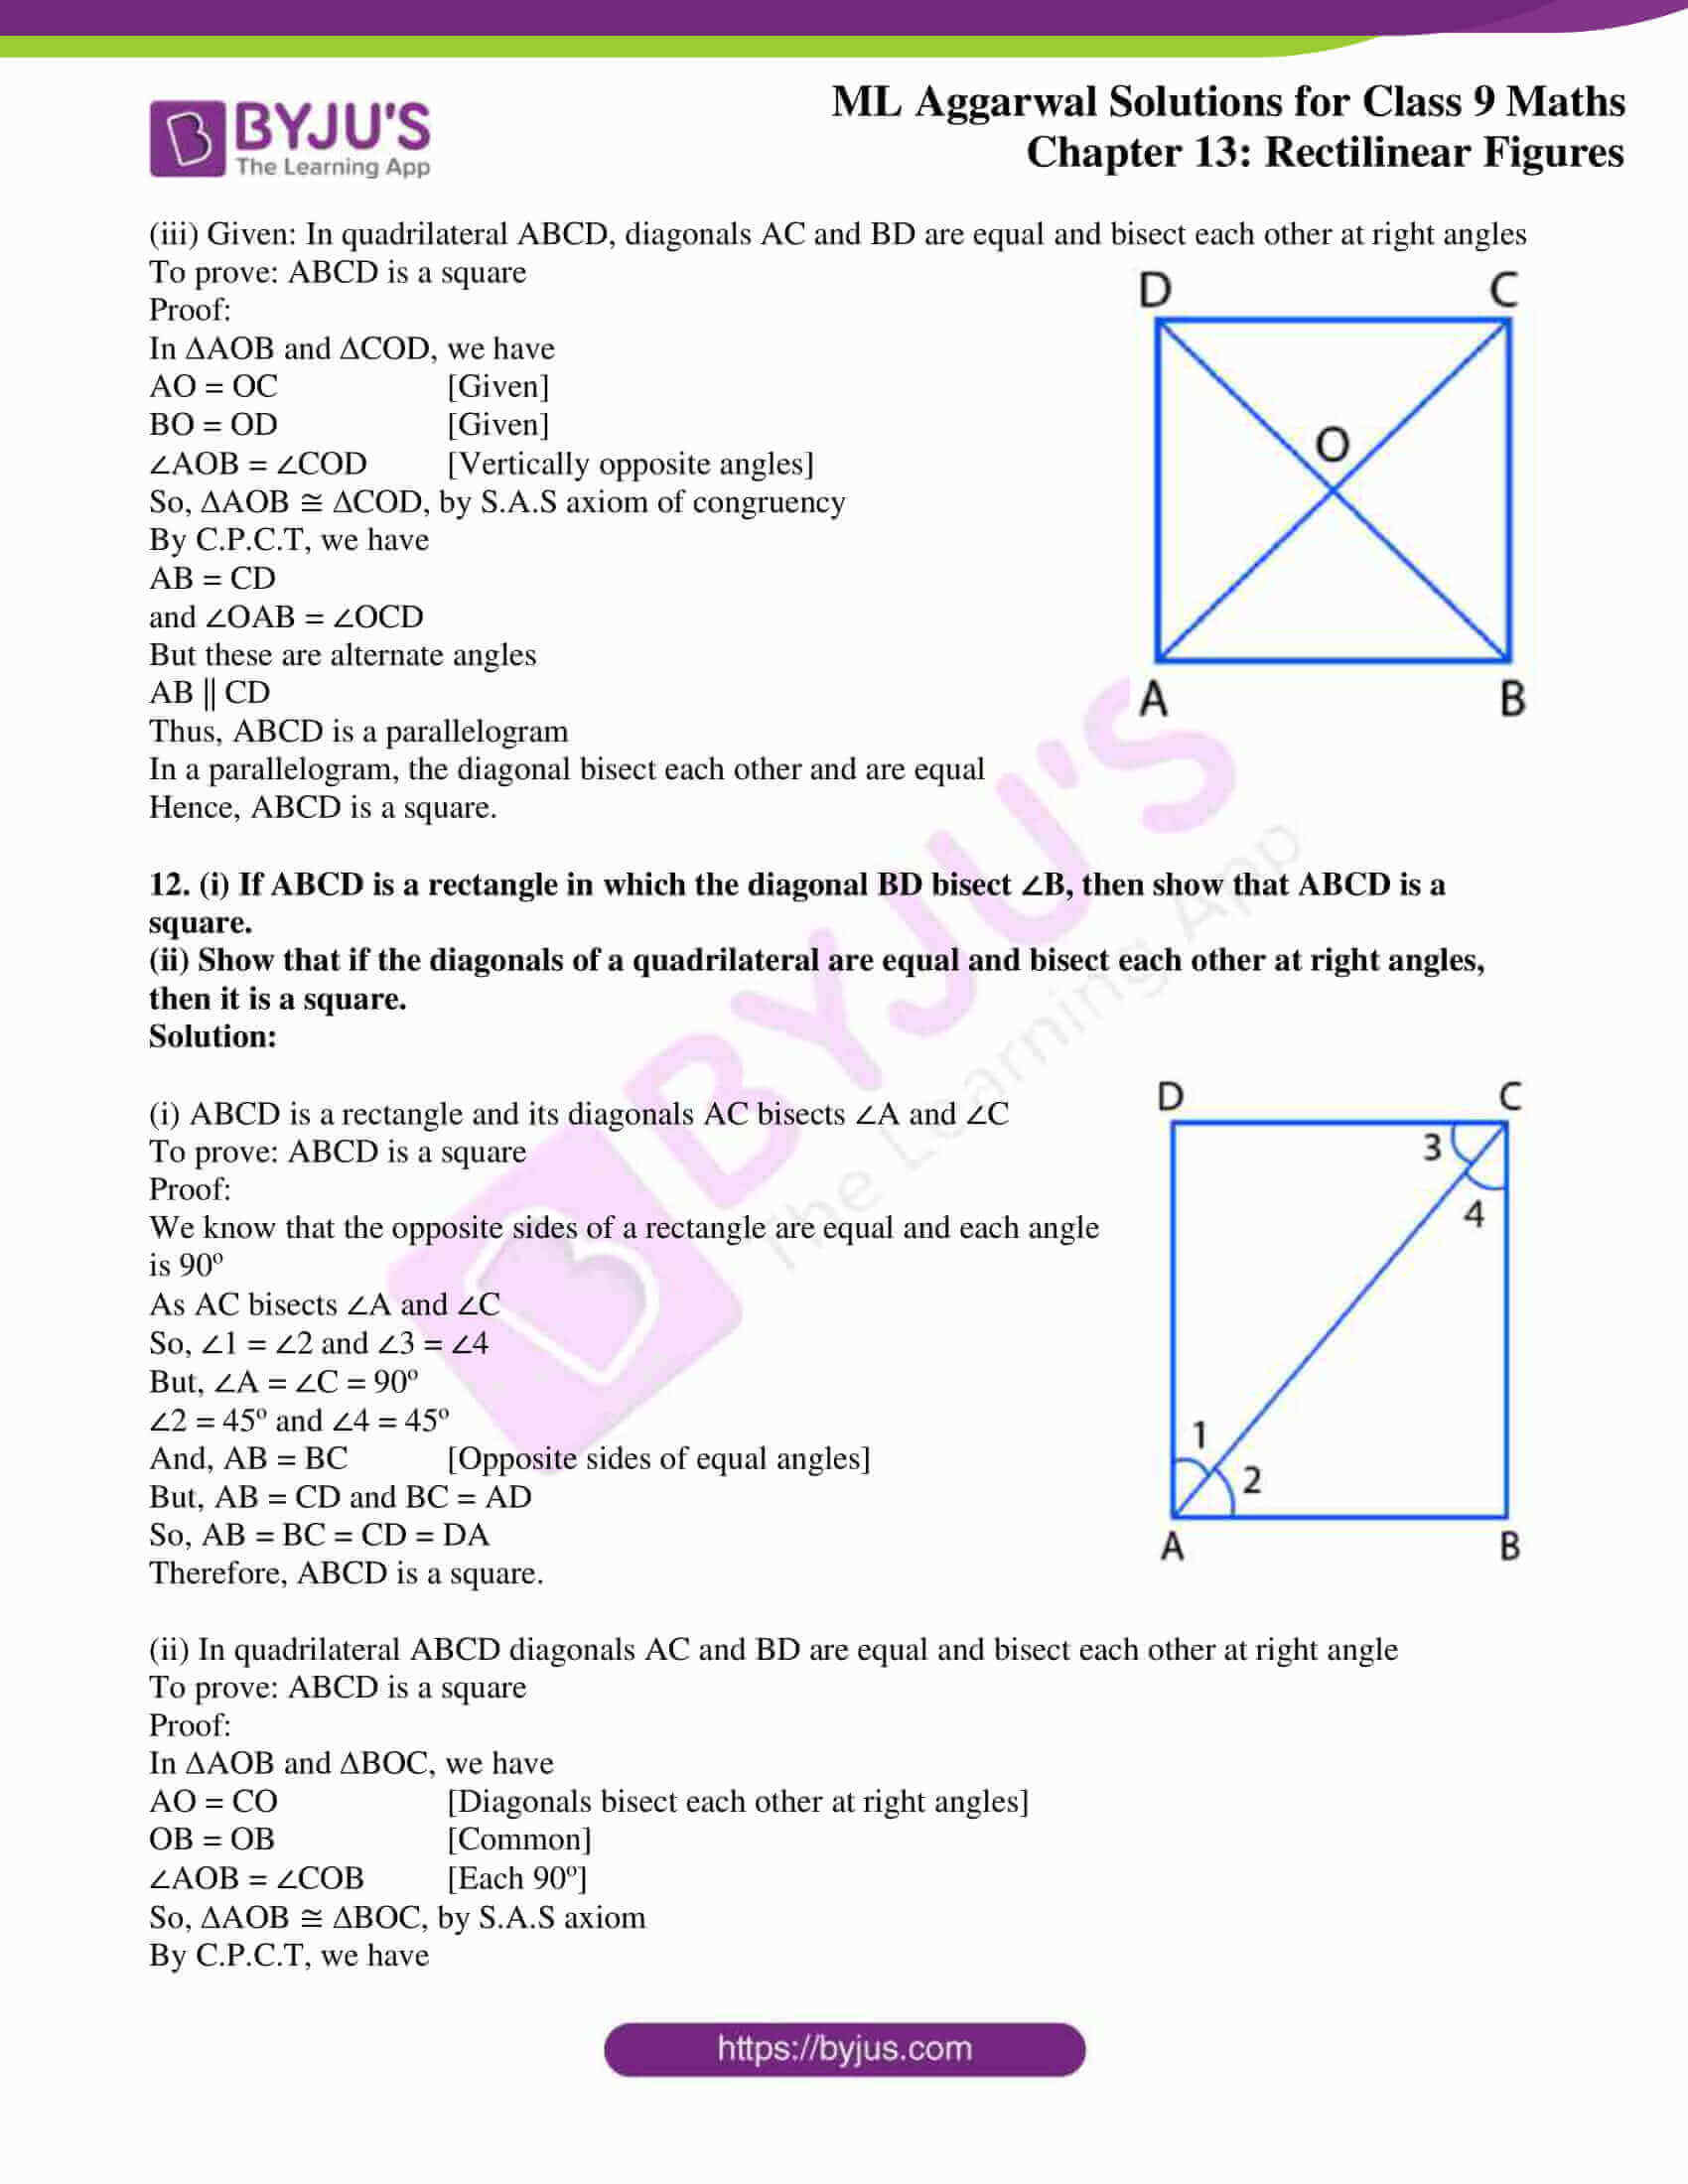 ml aggarwal solutions for class 9 maths chapter 13 12